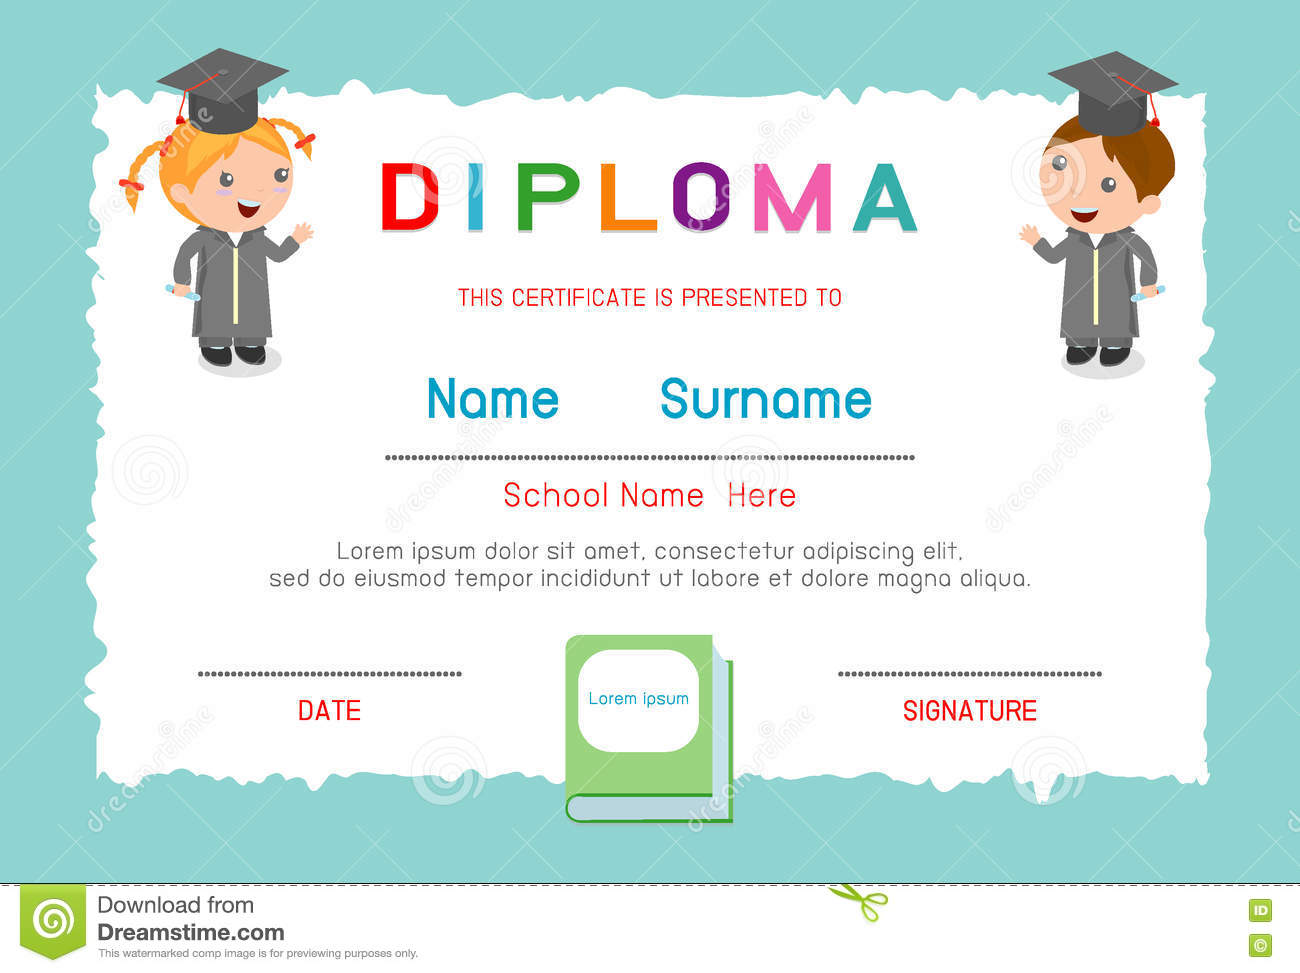 certificates kindergarten and elementary preschool kids diploma certificate background design template diploma template for - Preschool Certificate Template